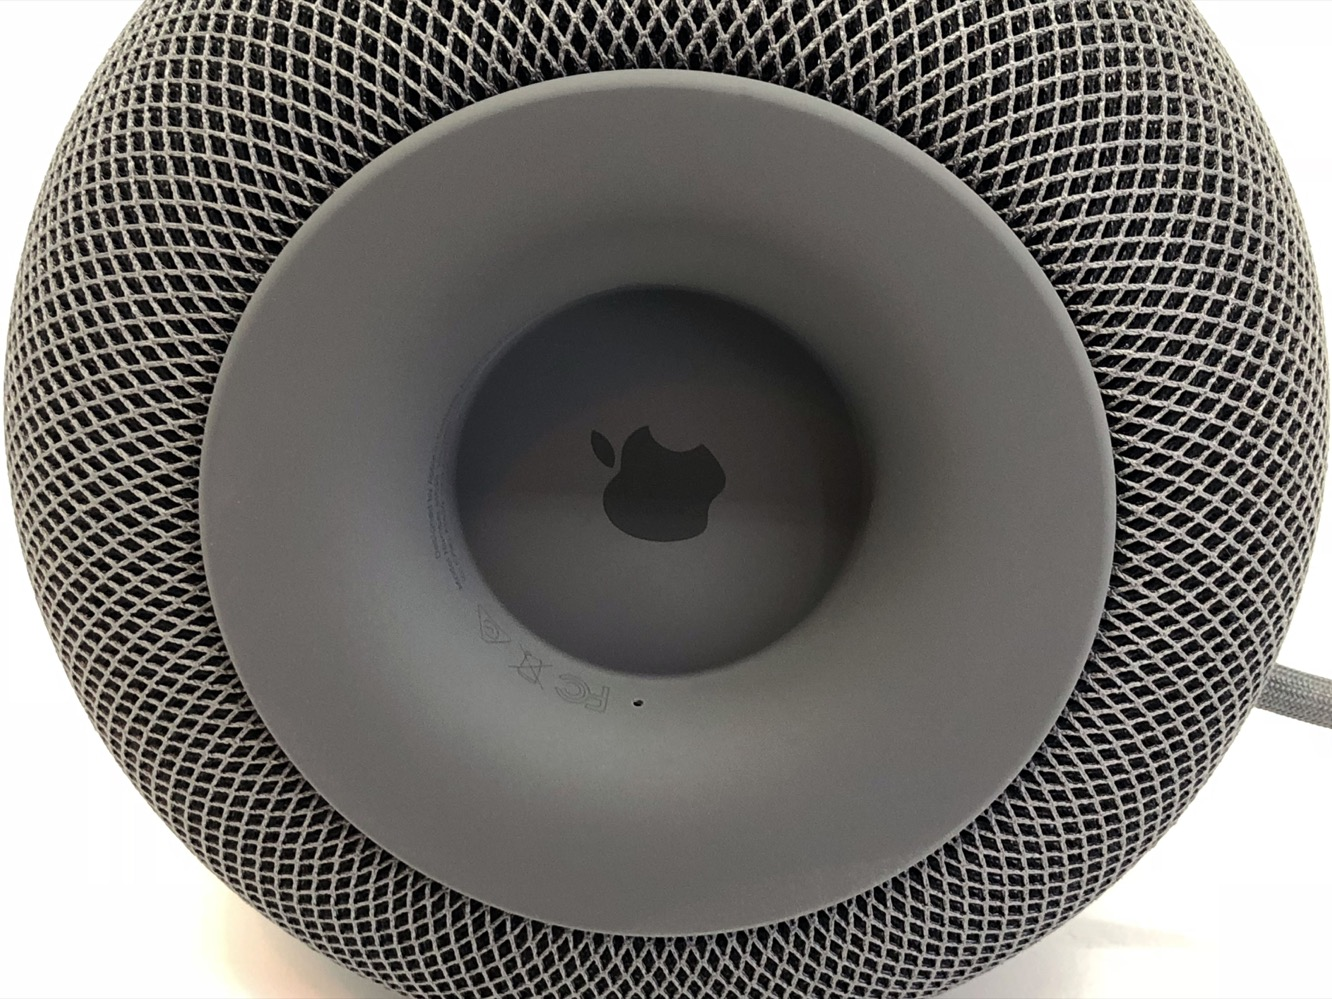 Review: Apple HomePod —Part 1: Audio Performance